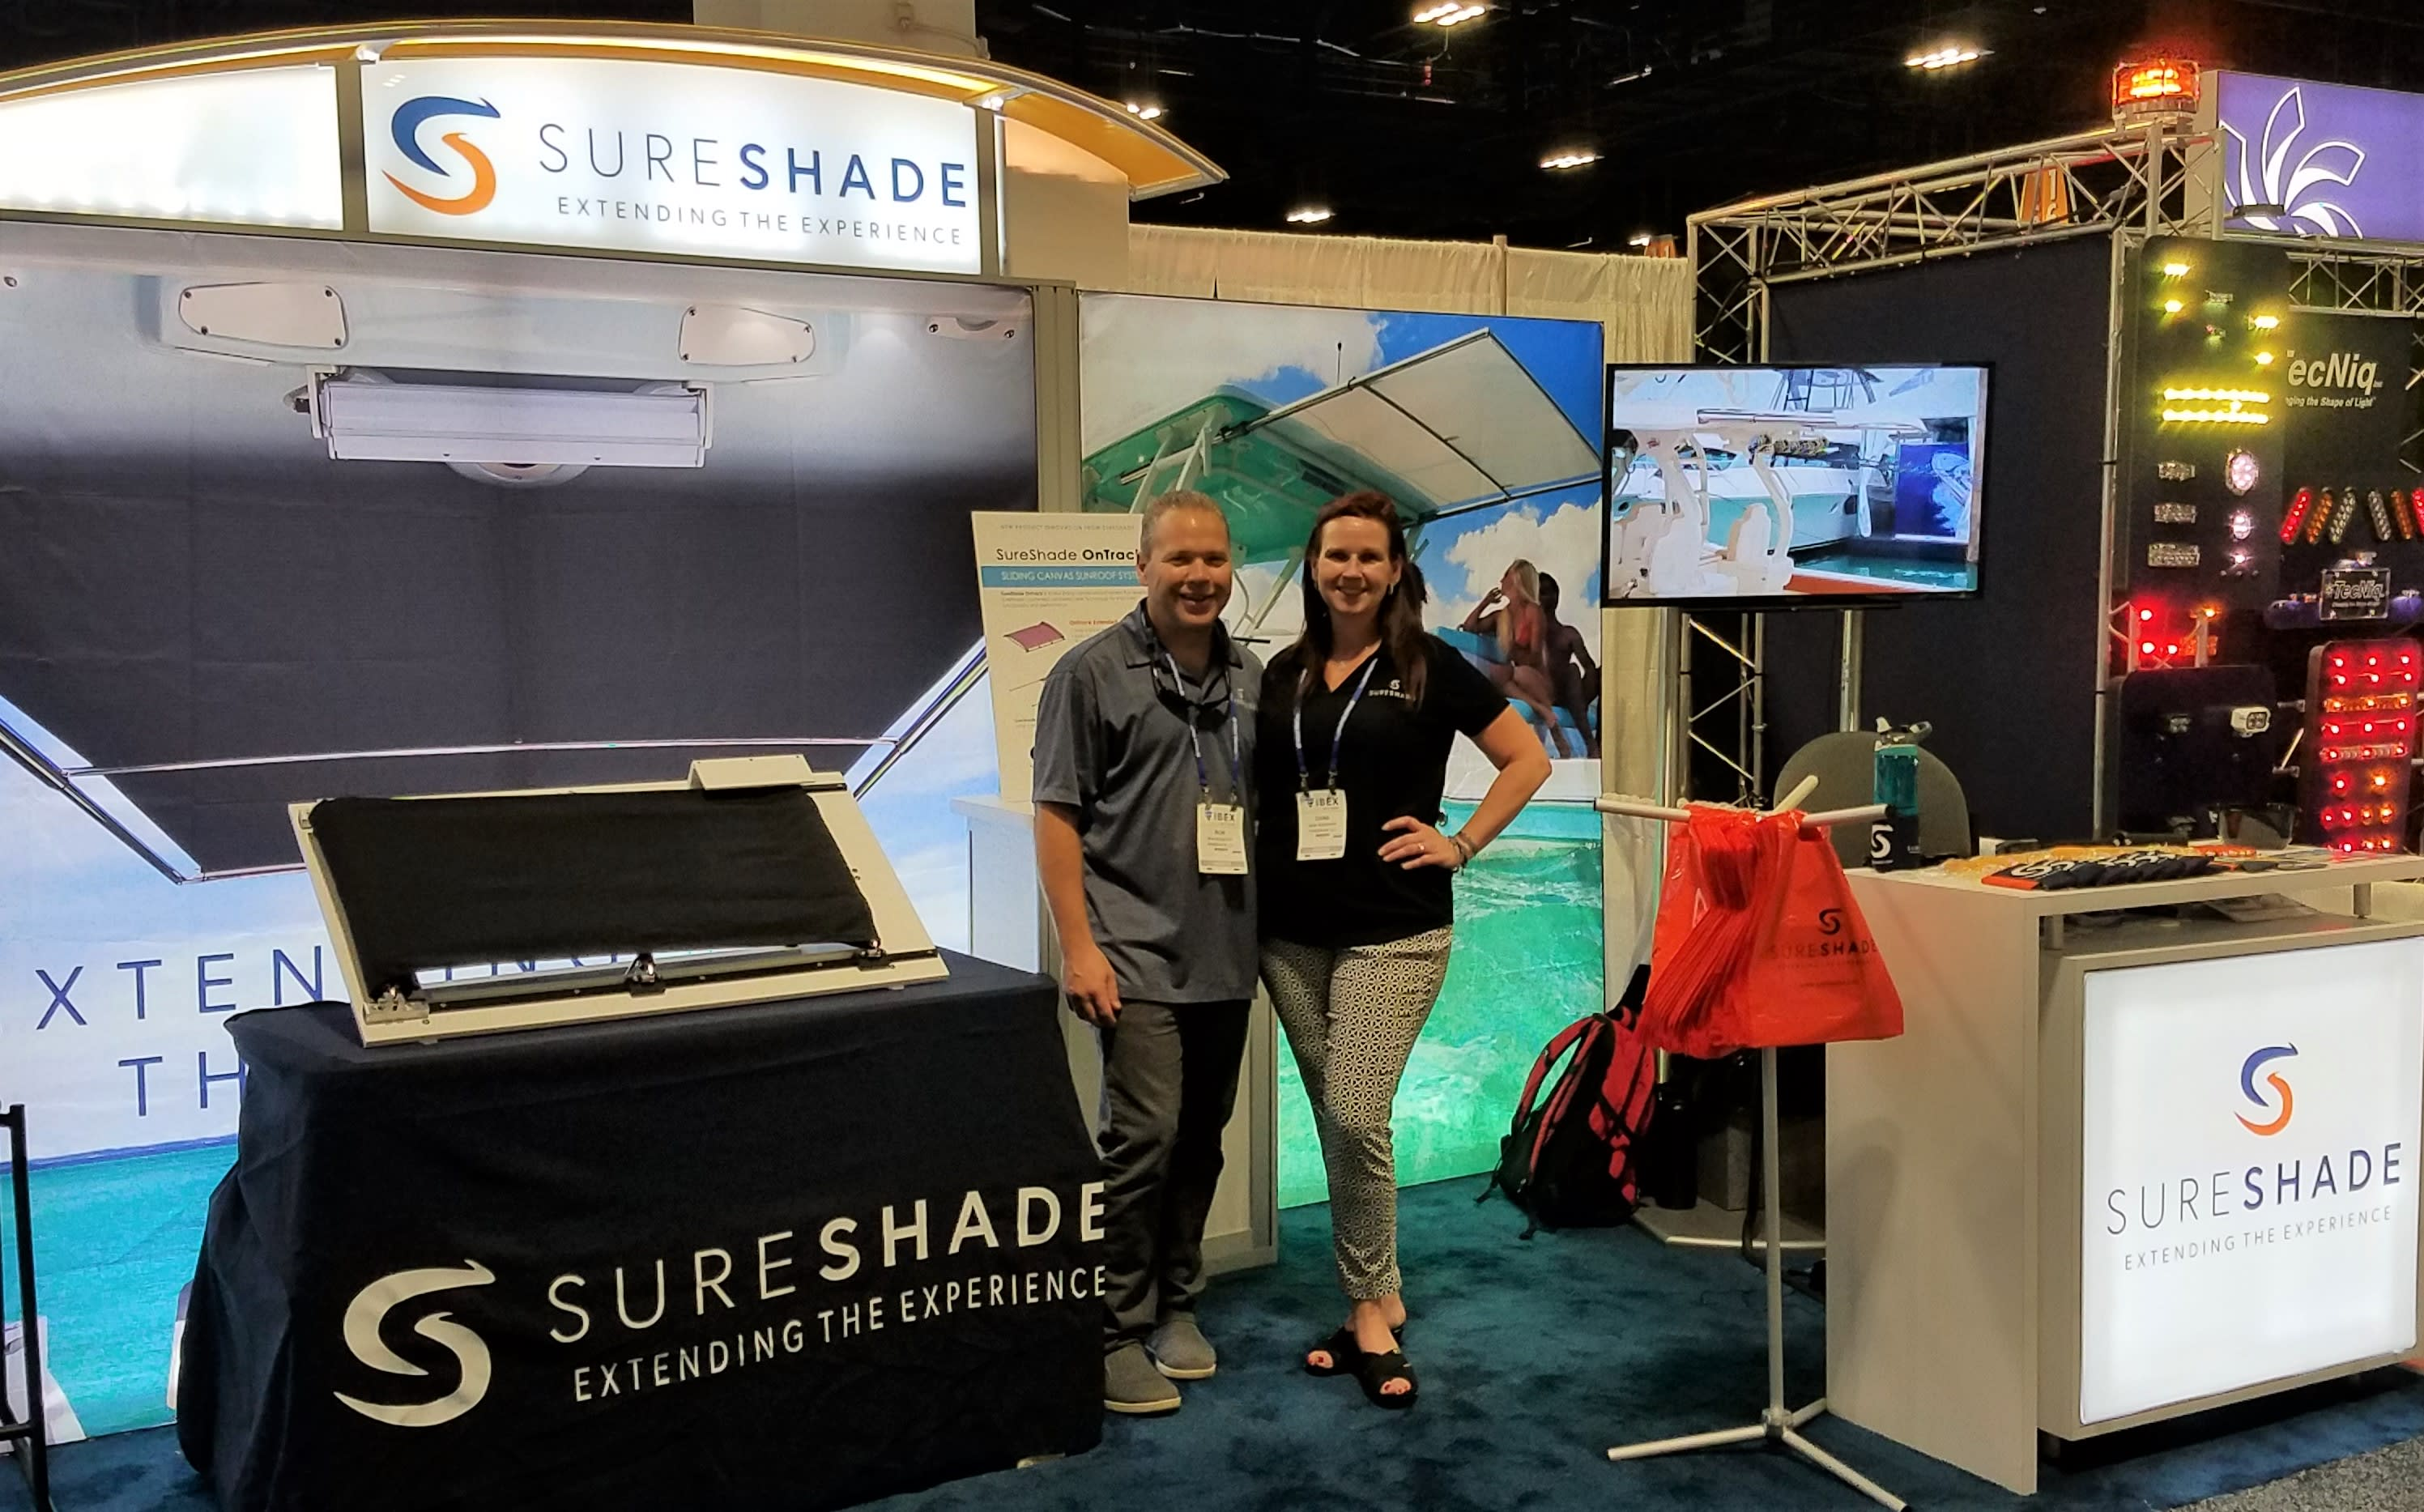 SureShade OnTrack Sliding Canvas Sunroof Introduced at IBEX 2018